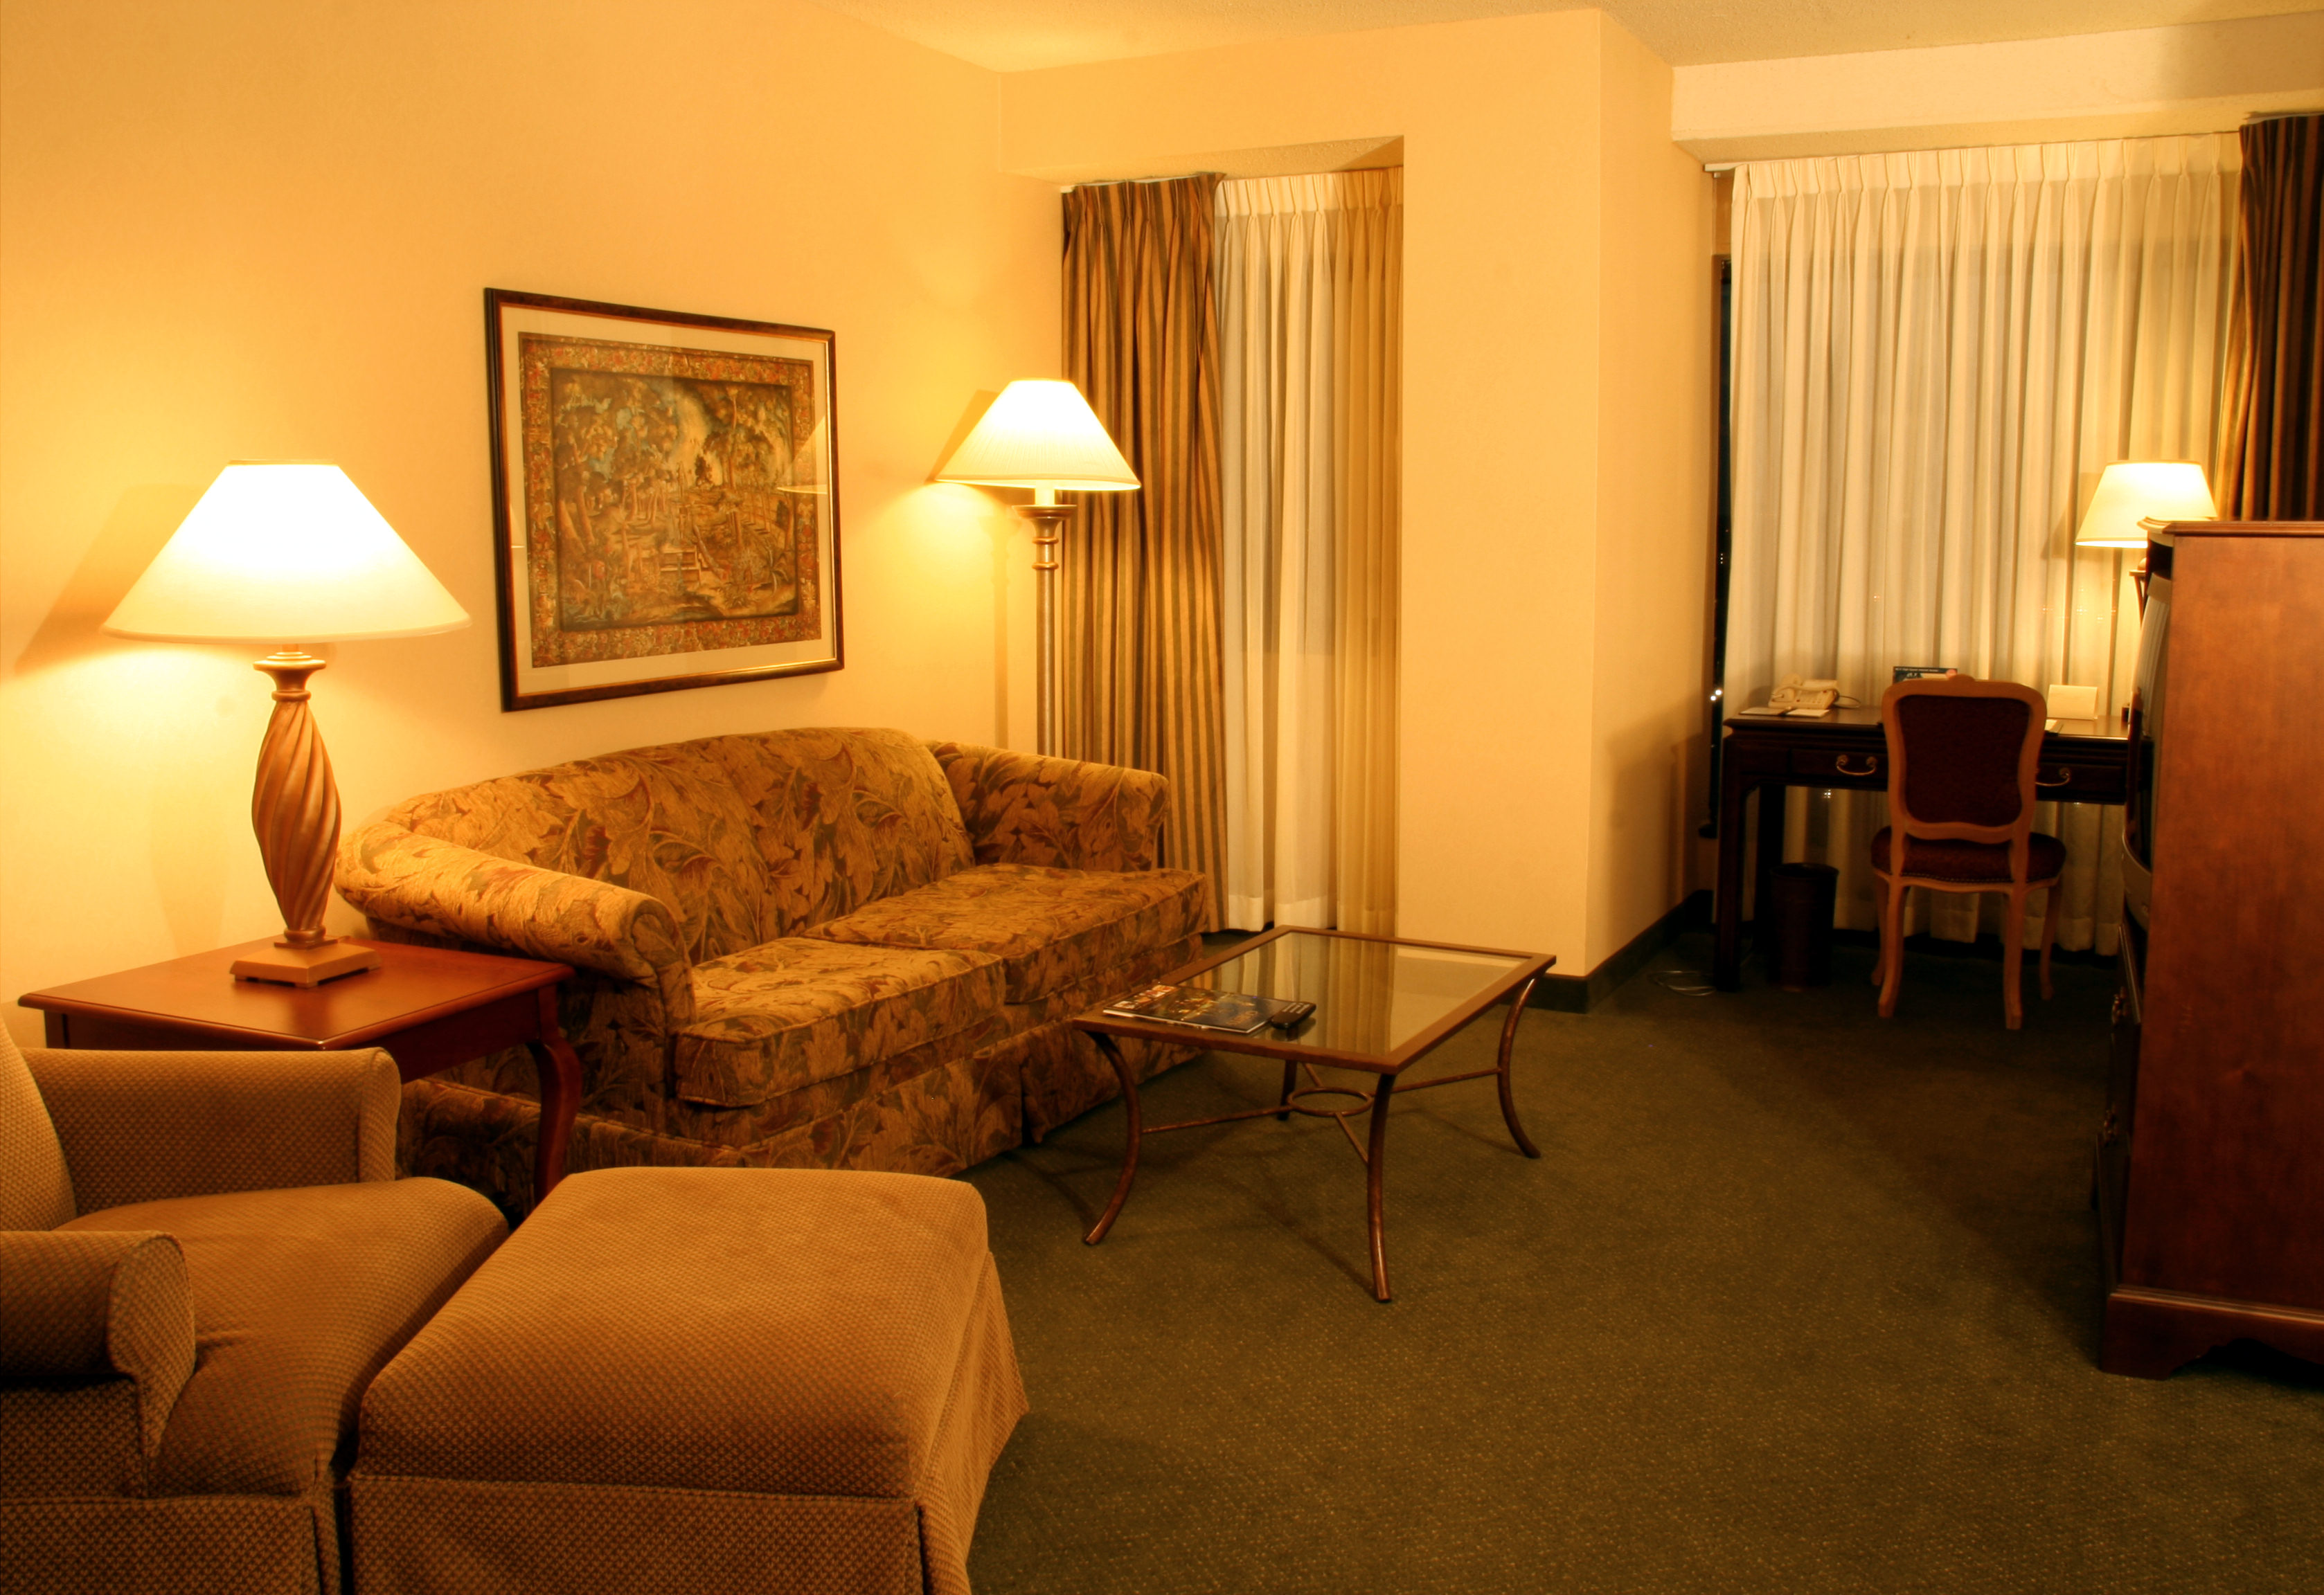 File:Hotel-suite-living-room.jpg